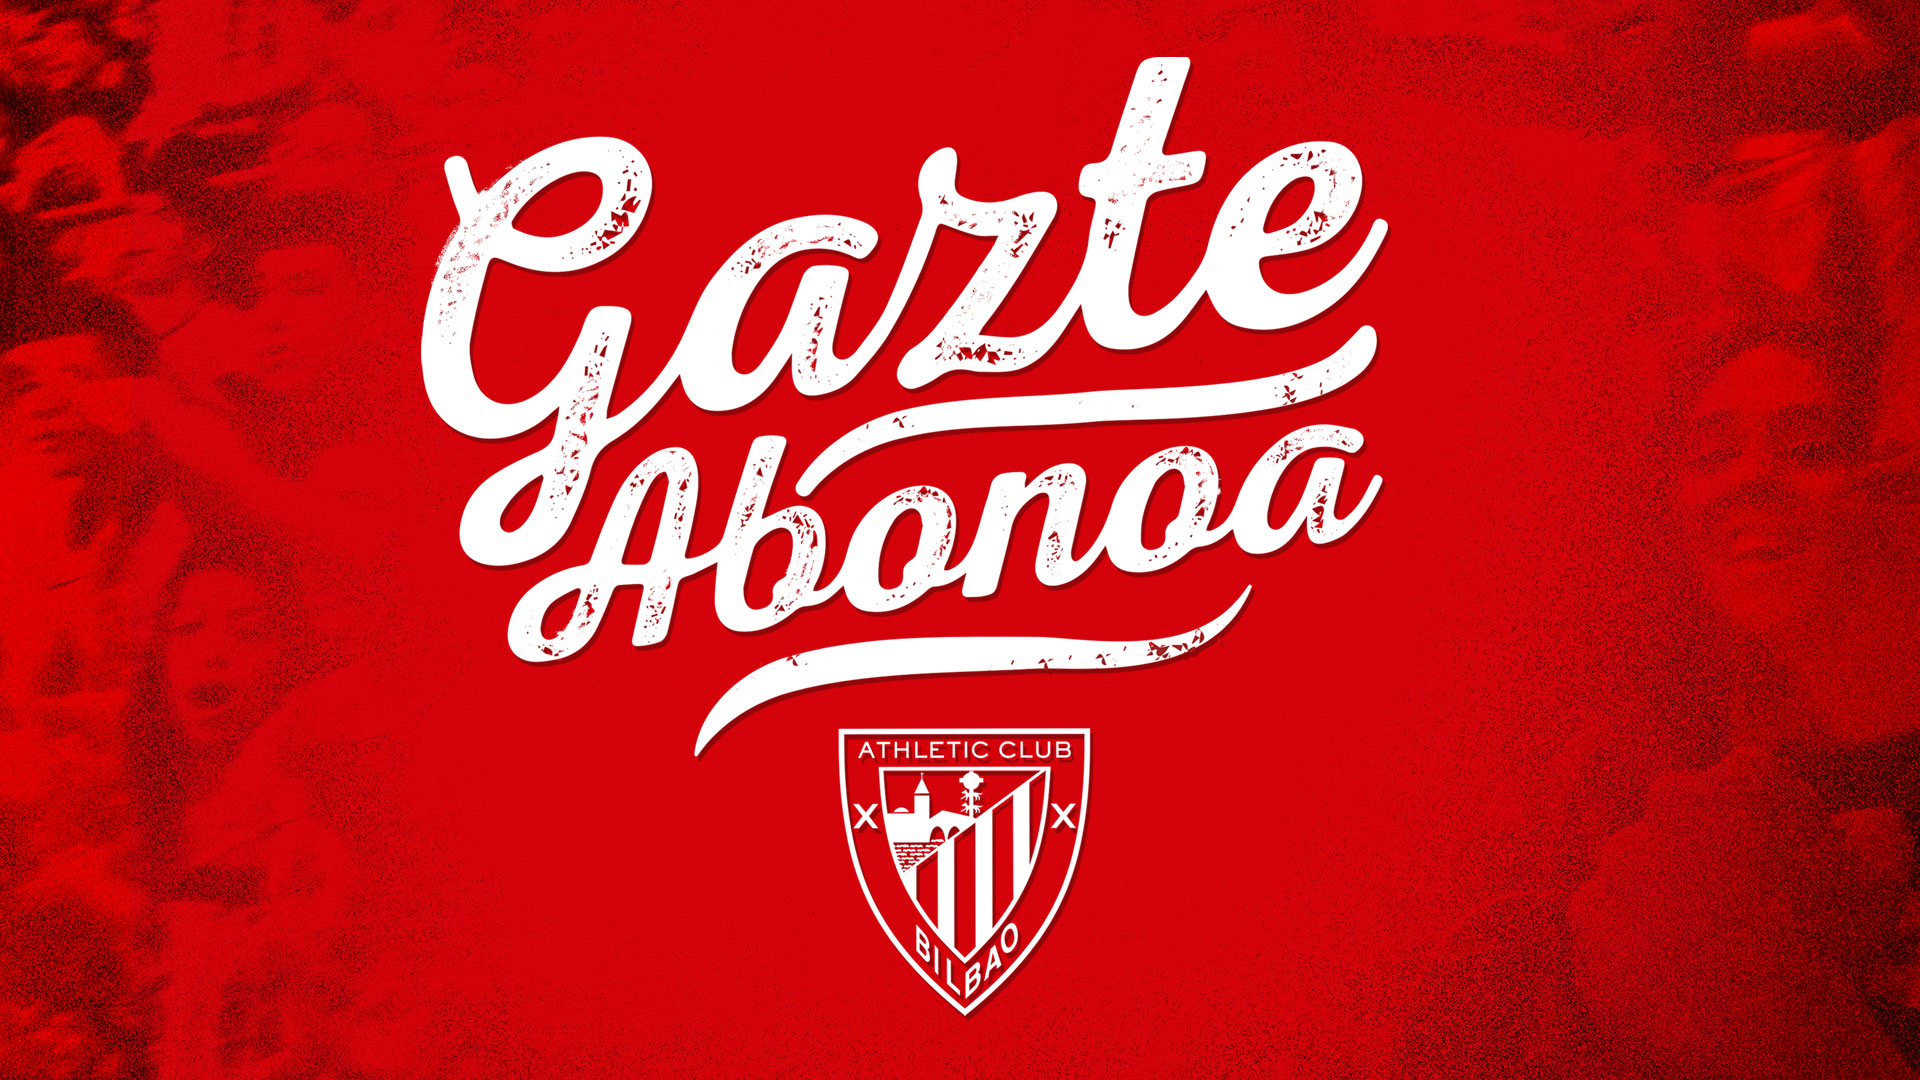 Get your gazte abonoa and live up Athletic!